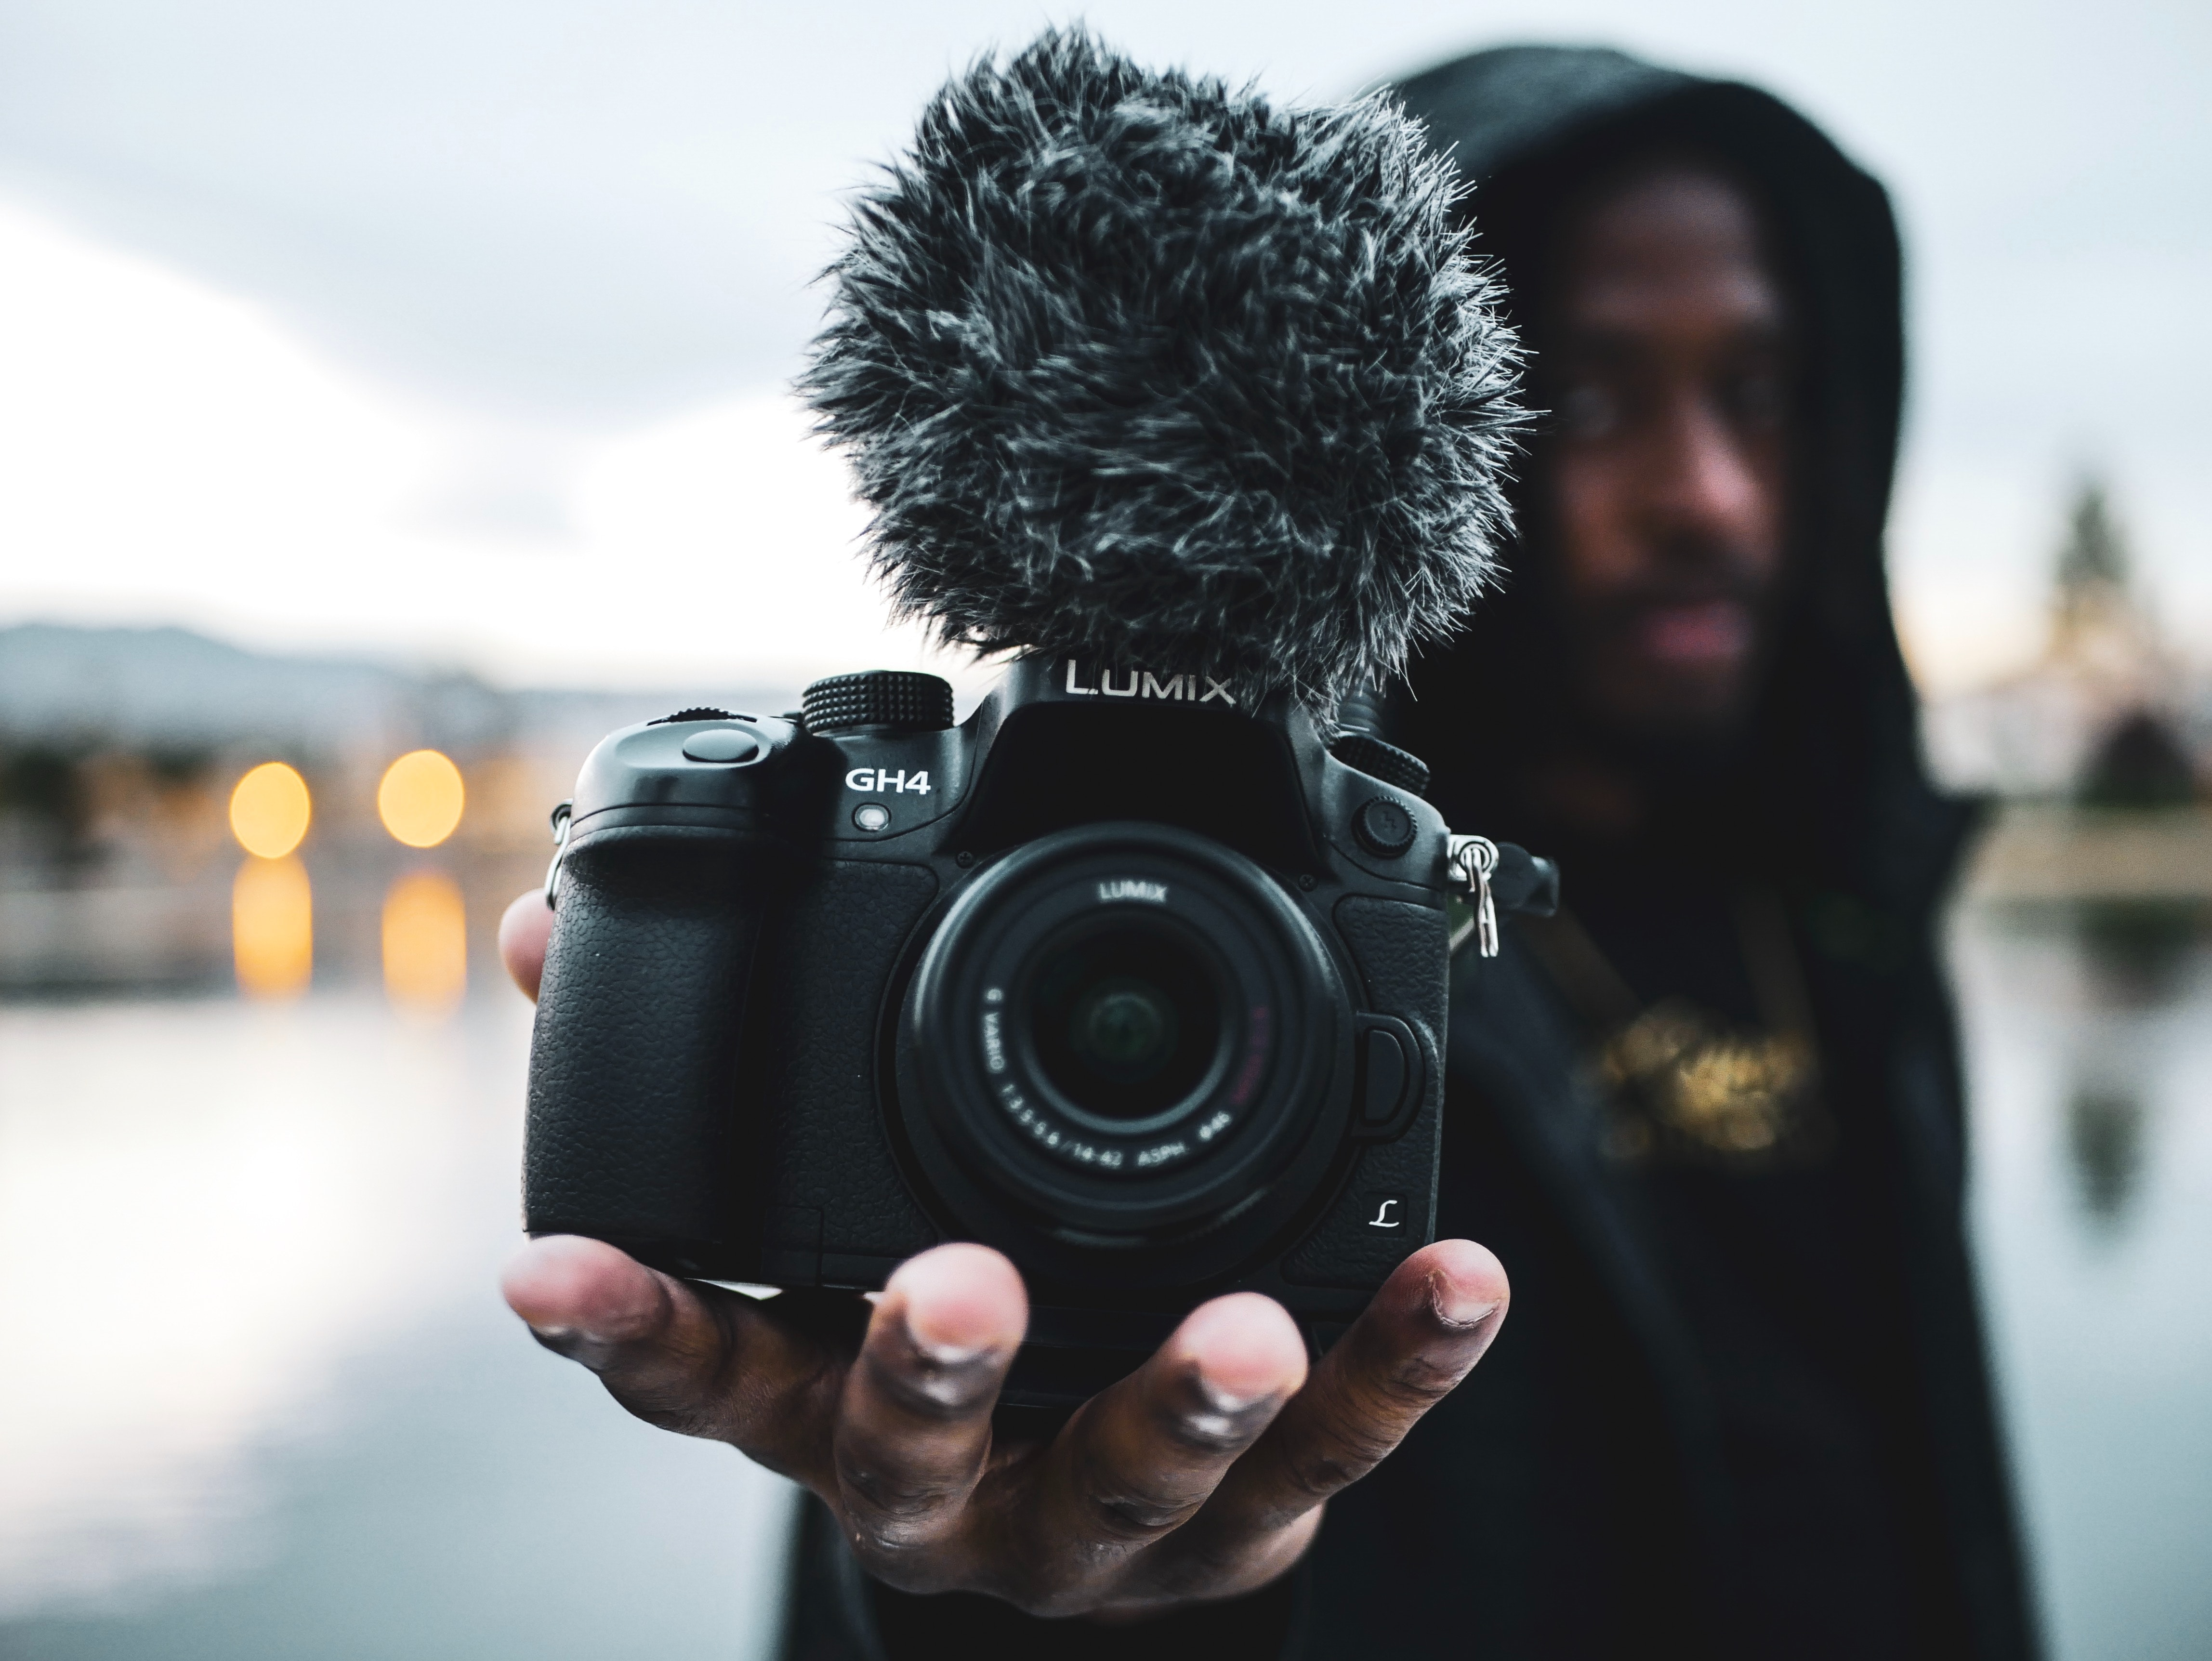 A guy holds a Lumix camera with a mic with a background that is dimmed